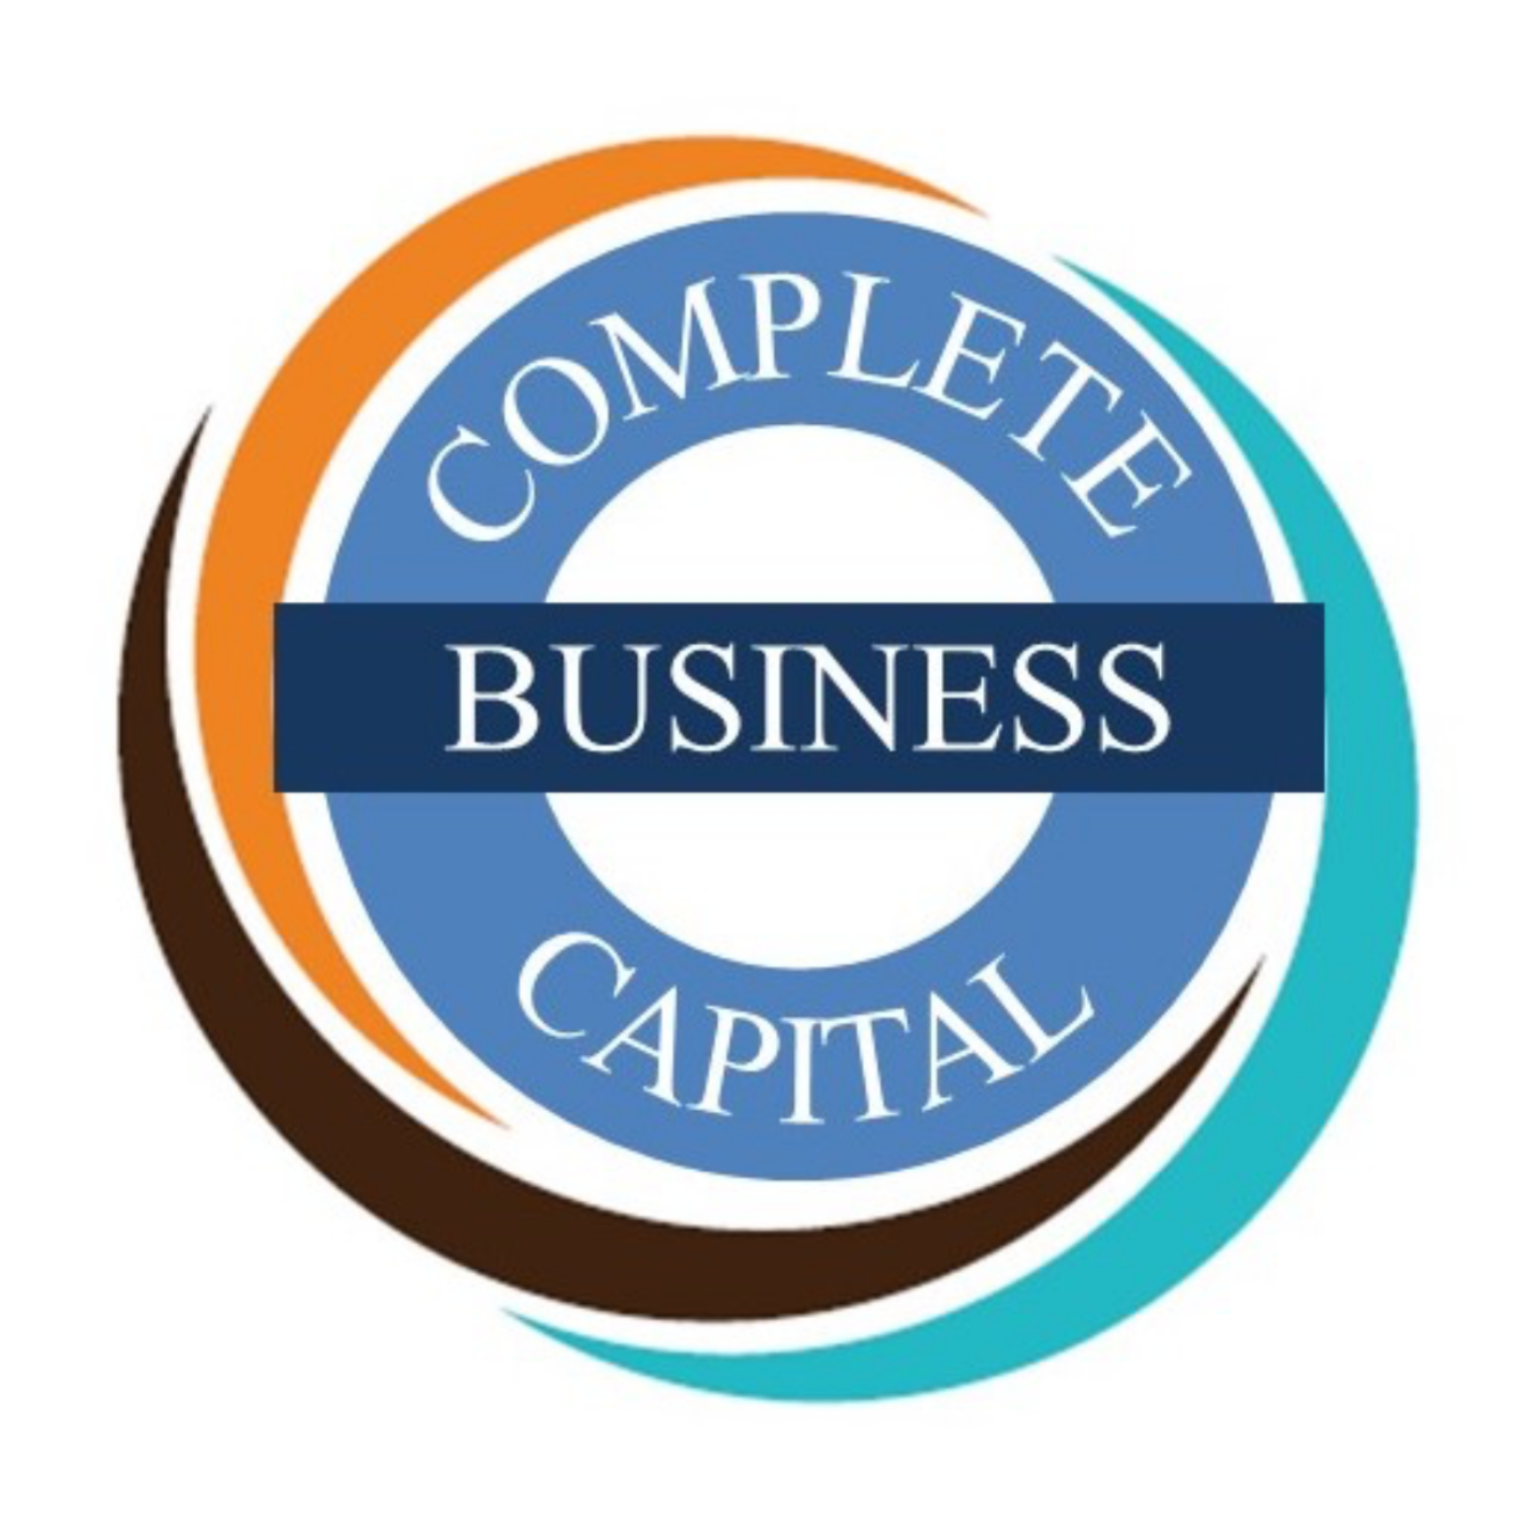 Complete Business Capital-2